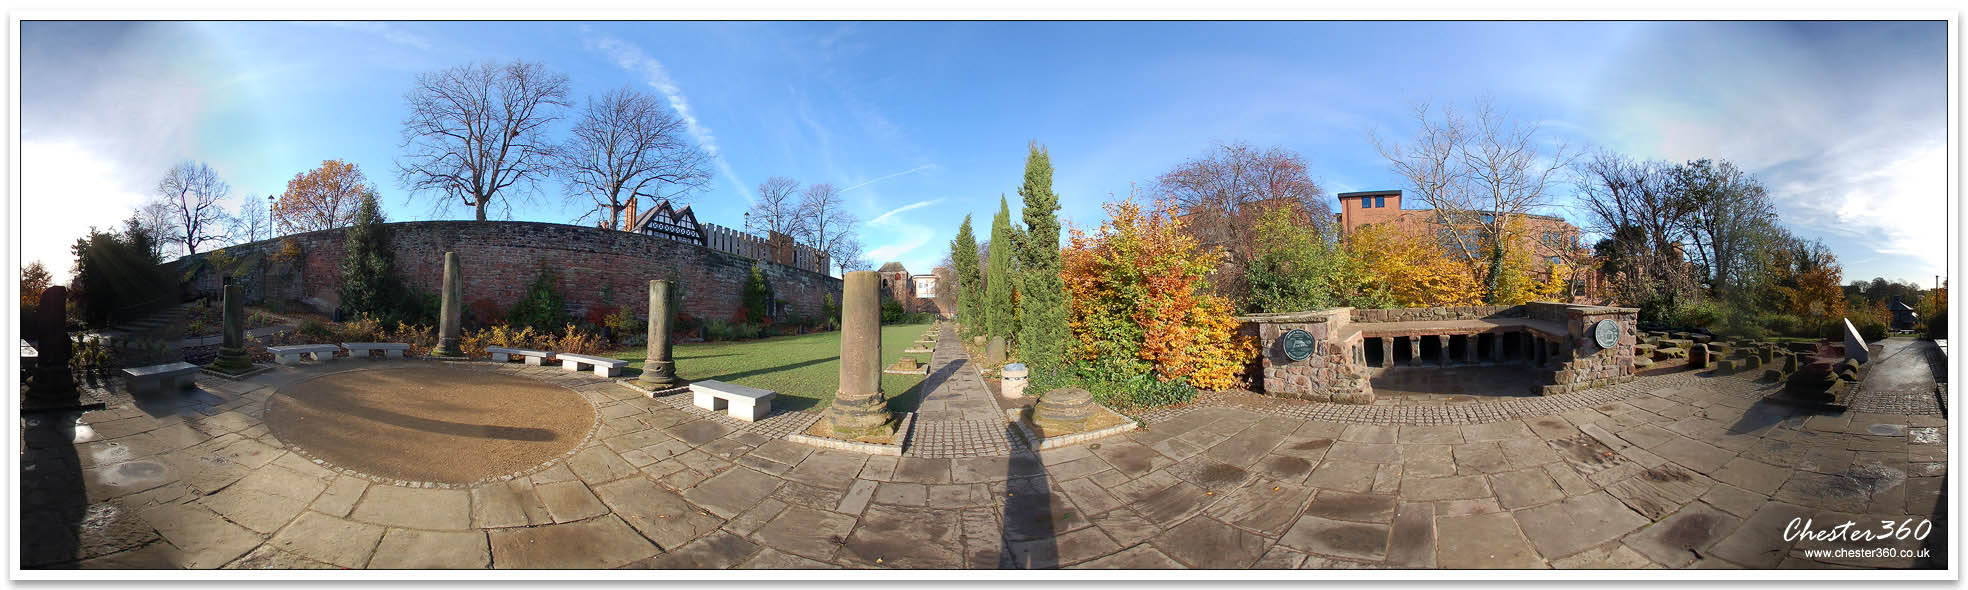 Panoramic Photo of the Roman Gardens in Chester